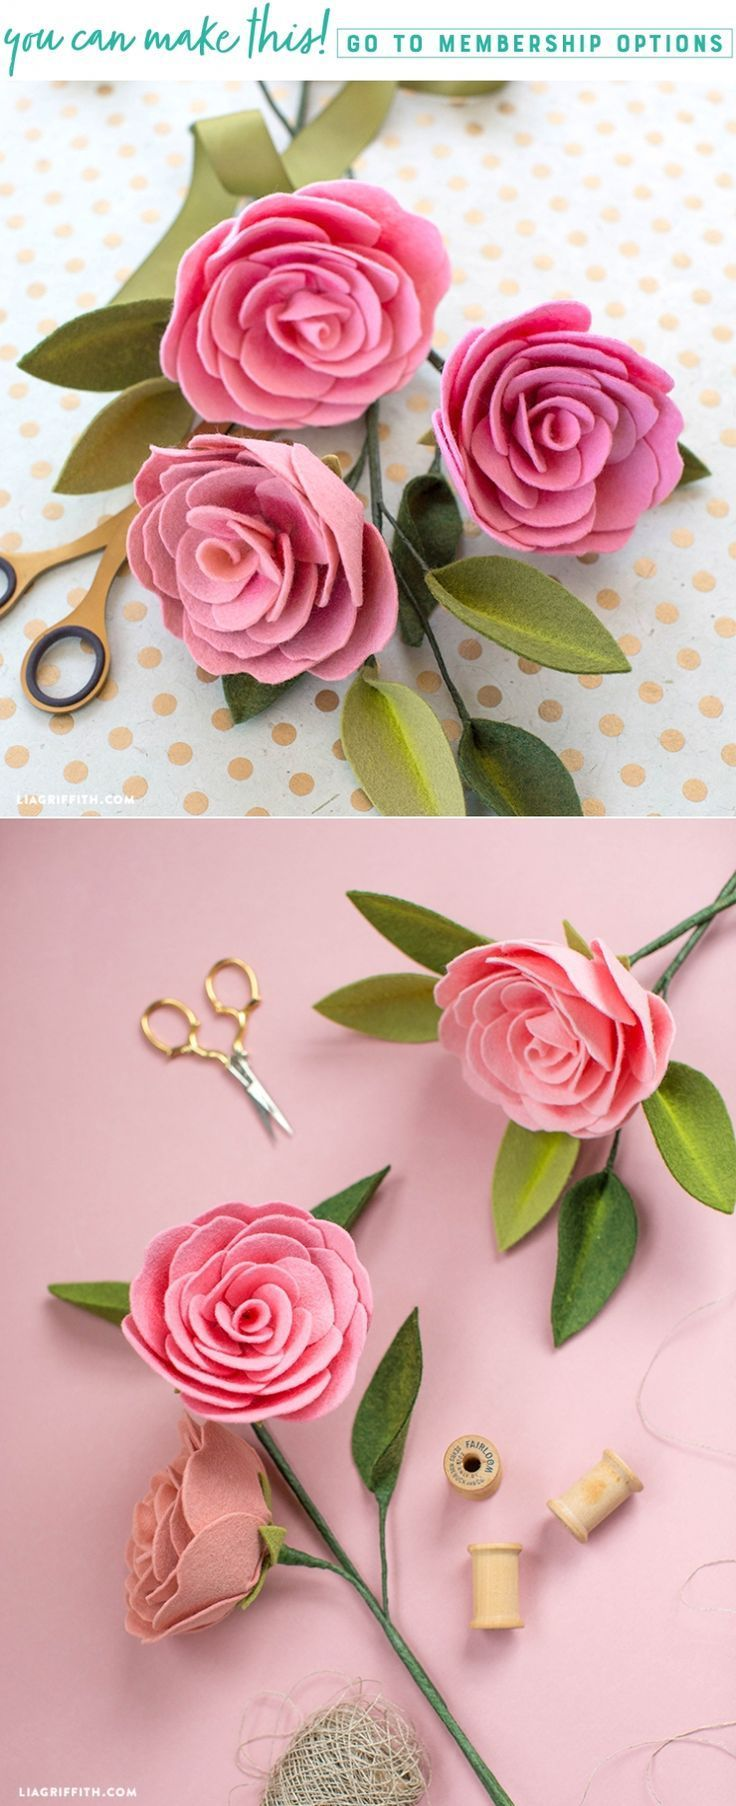 Create a Camellia DIY Felt Flower with Pan Pastel Details #feltflowertemplate This gorgeous Camellia is the latest addition to our DIY felt flower projects. Pan Pastels give these flowers a realistic depth. #feltflowertemplate